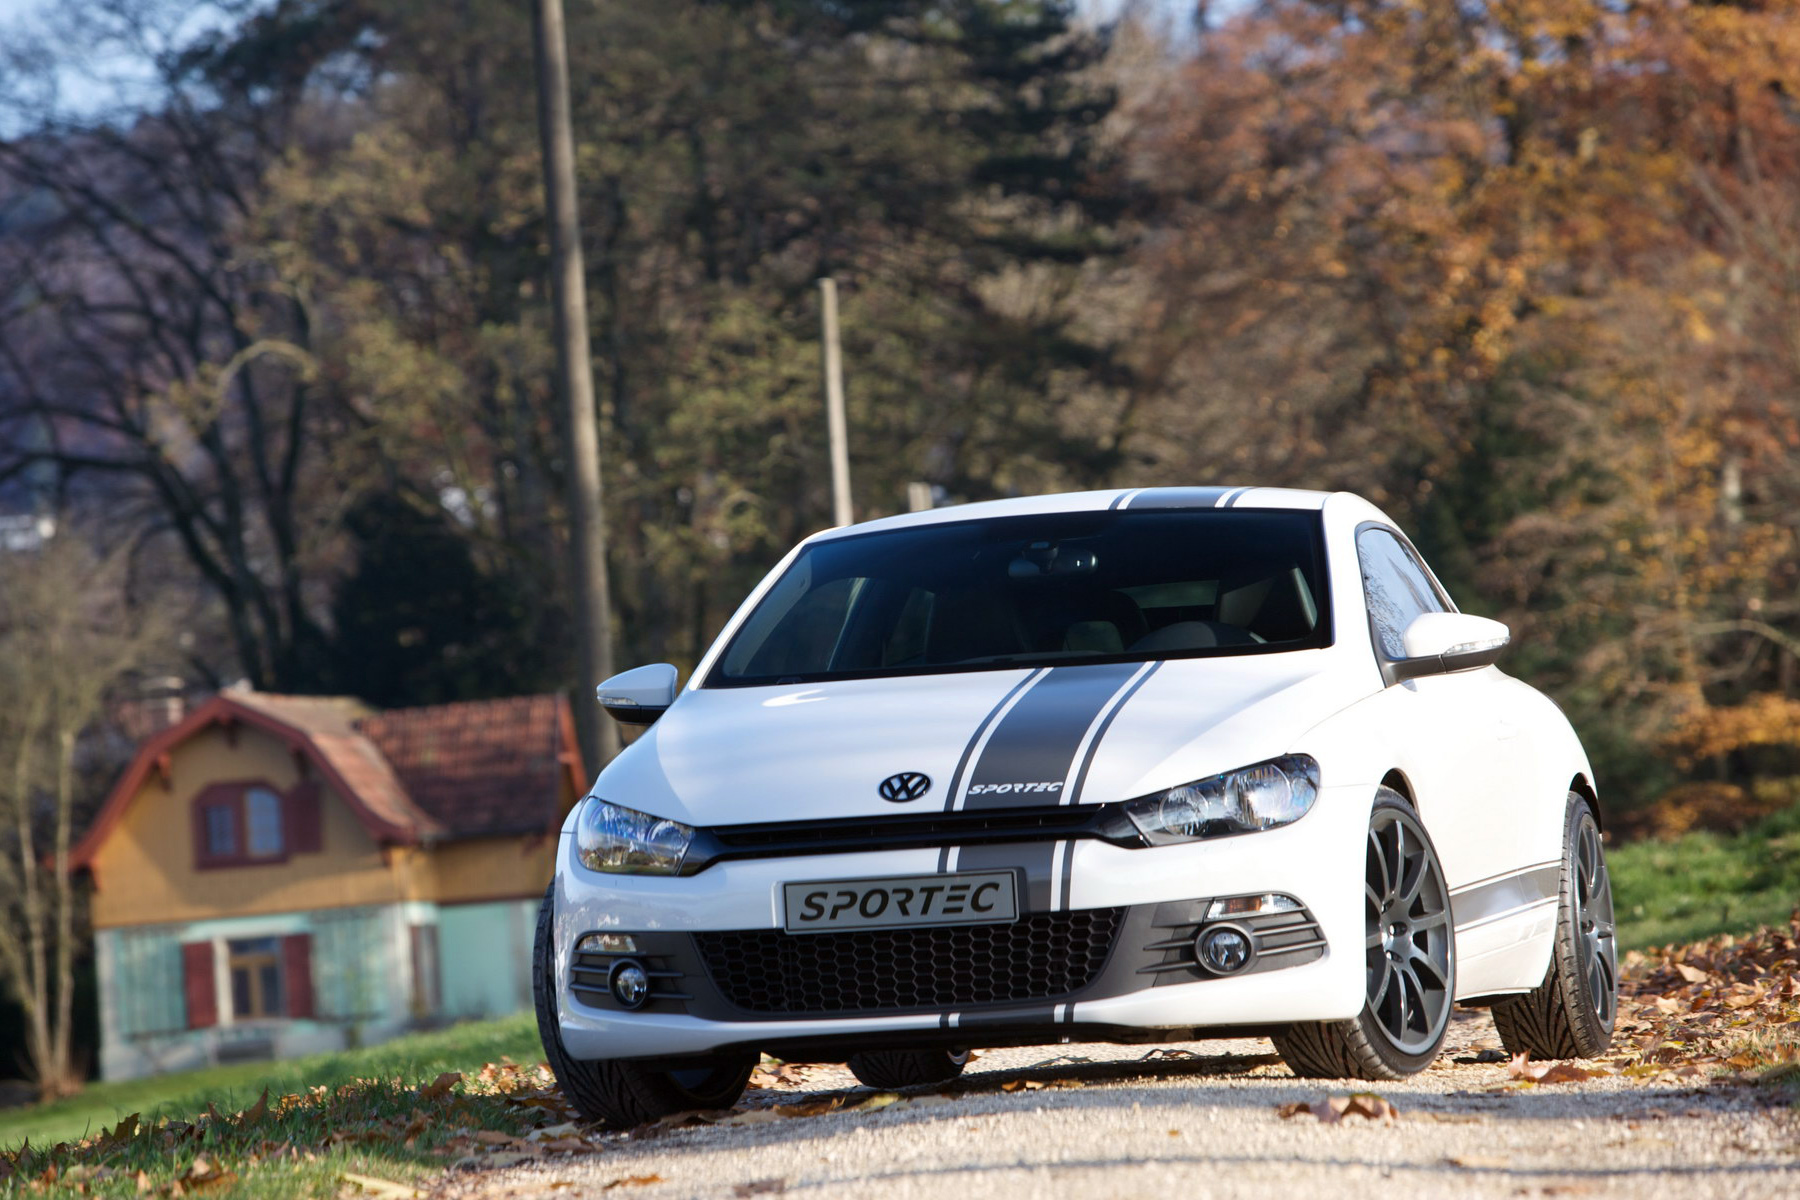 Sportec VW Scirocco SC350 photo 61628